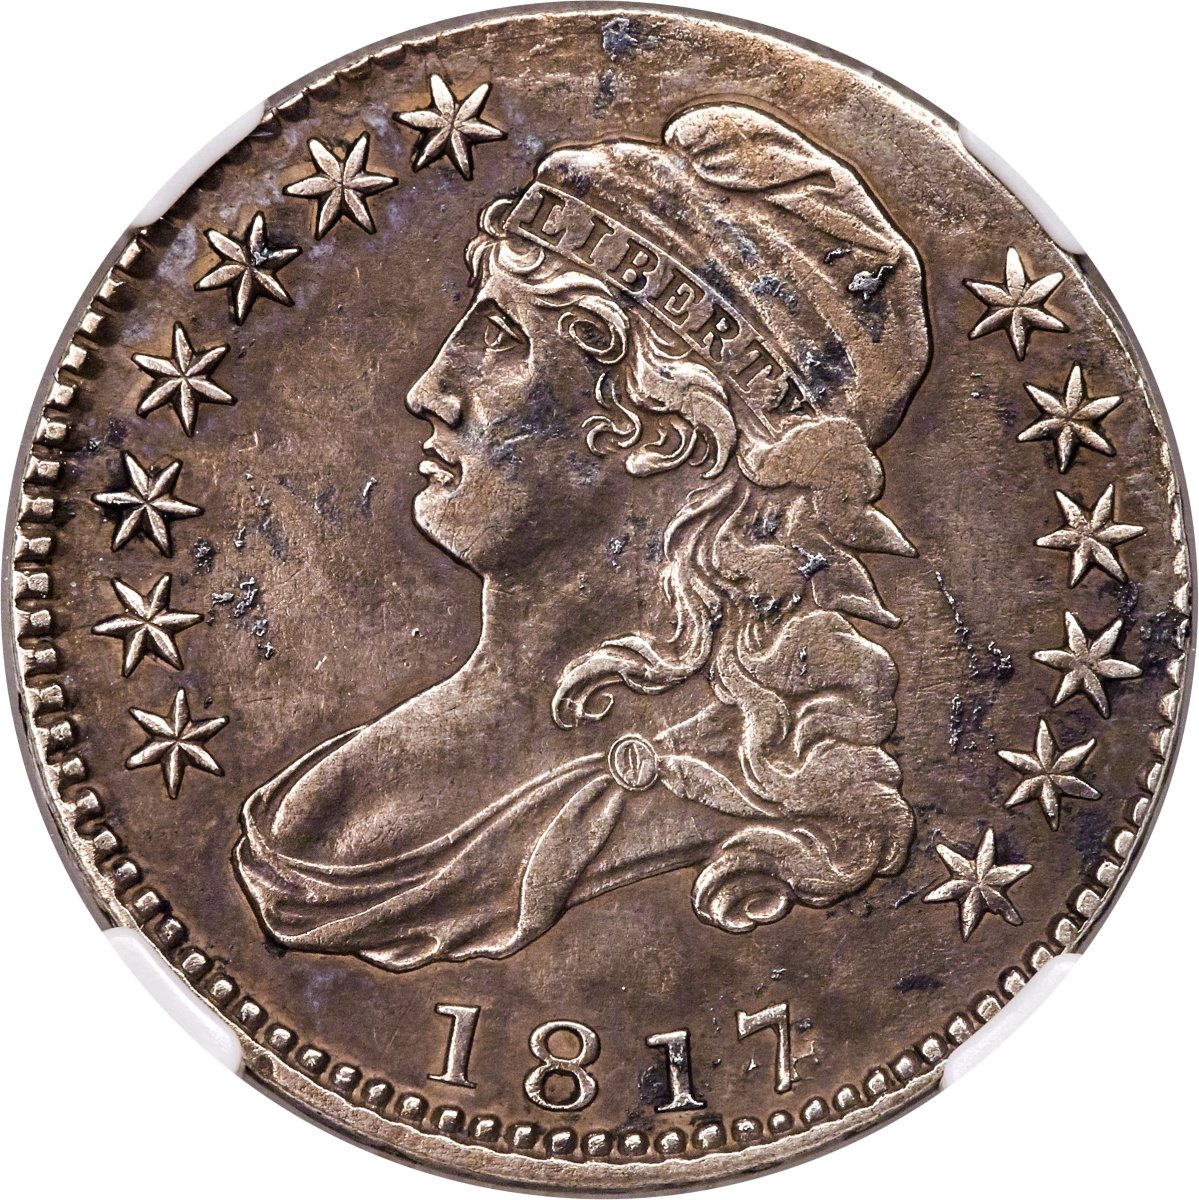 One of the greatest half dollar rarities and key to the Overton Variety Series, this 1817/4 sold for $156,000. (Image courtesy of Heritage Auctions)